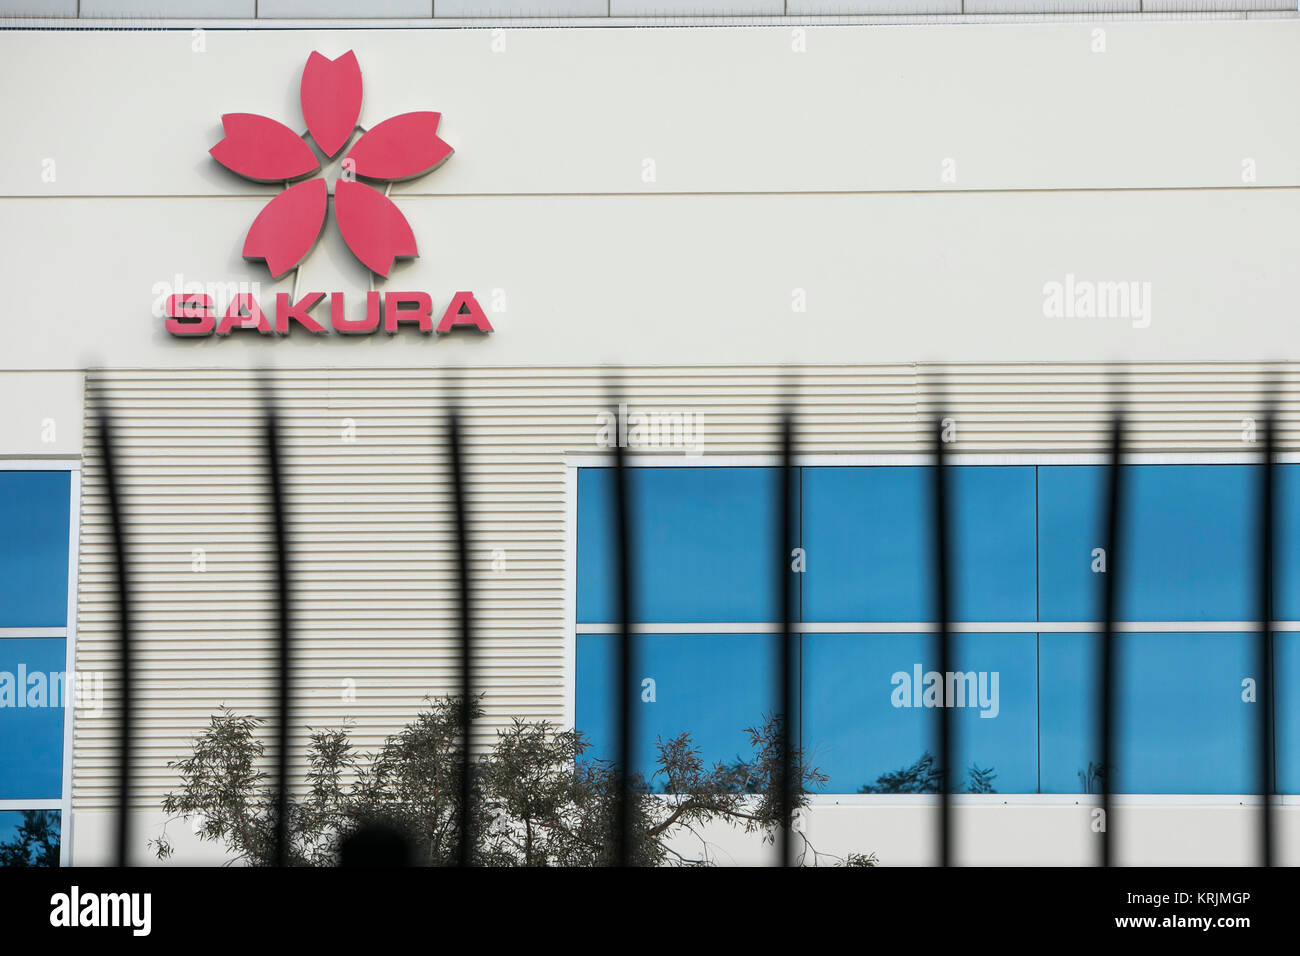 A logo sign outside of a facility occupied by Sakura Finetek in Torrance, California, on December 10, 2017. - Stock Image